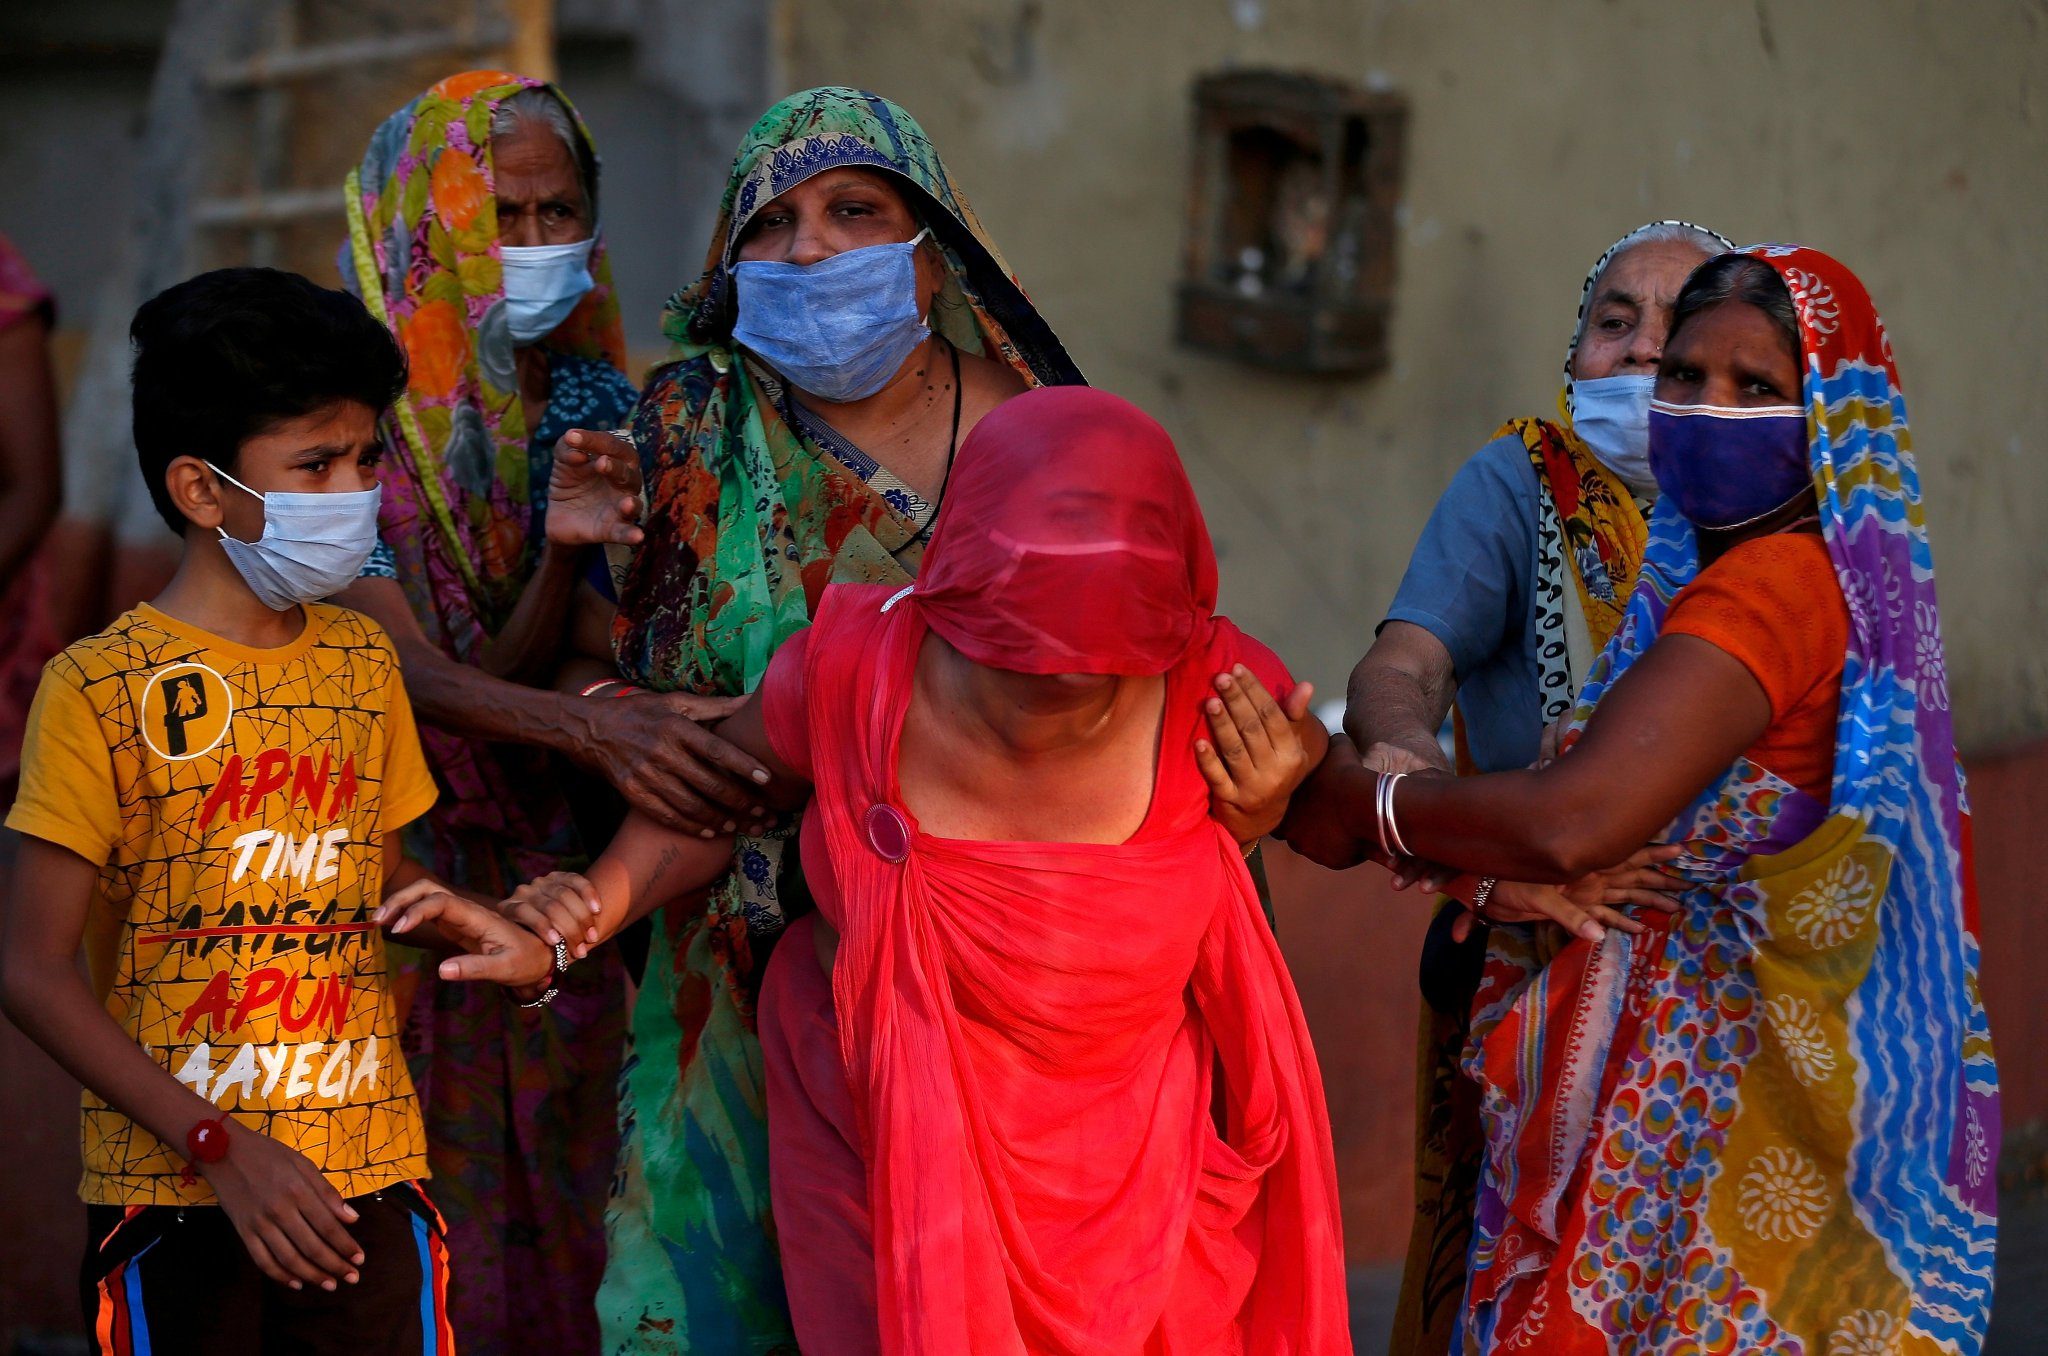 Relatives of a girl who died due to the coronavirus disease mourn outside a crematorium in Ahmedabad, India. May 2020. REUTERS/Amit Dave